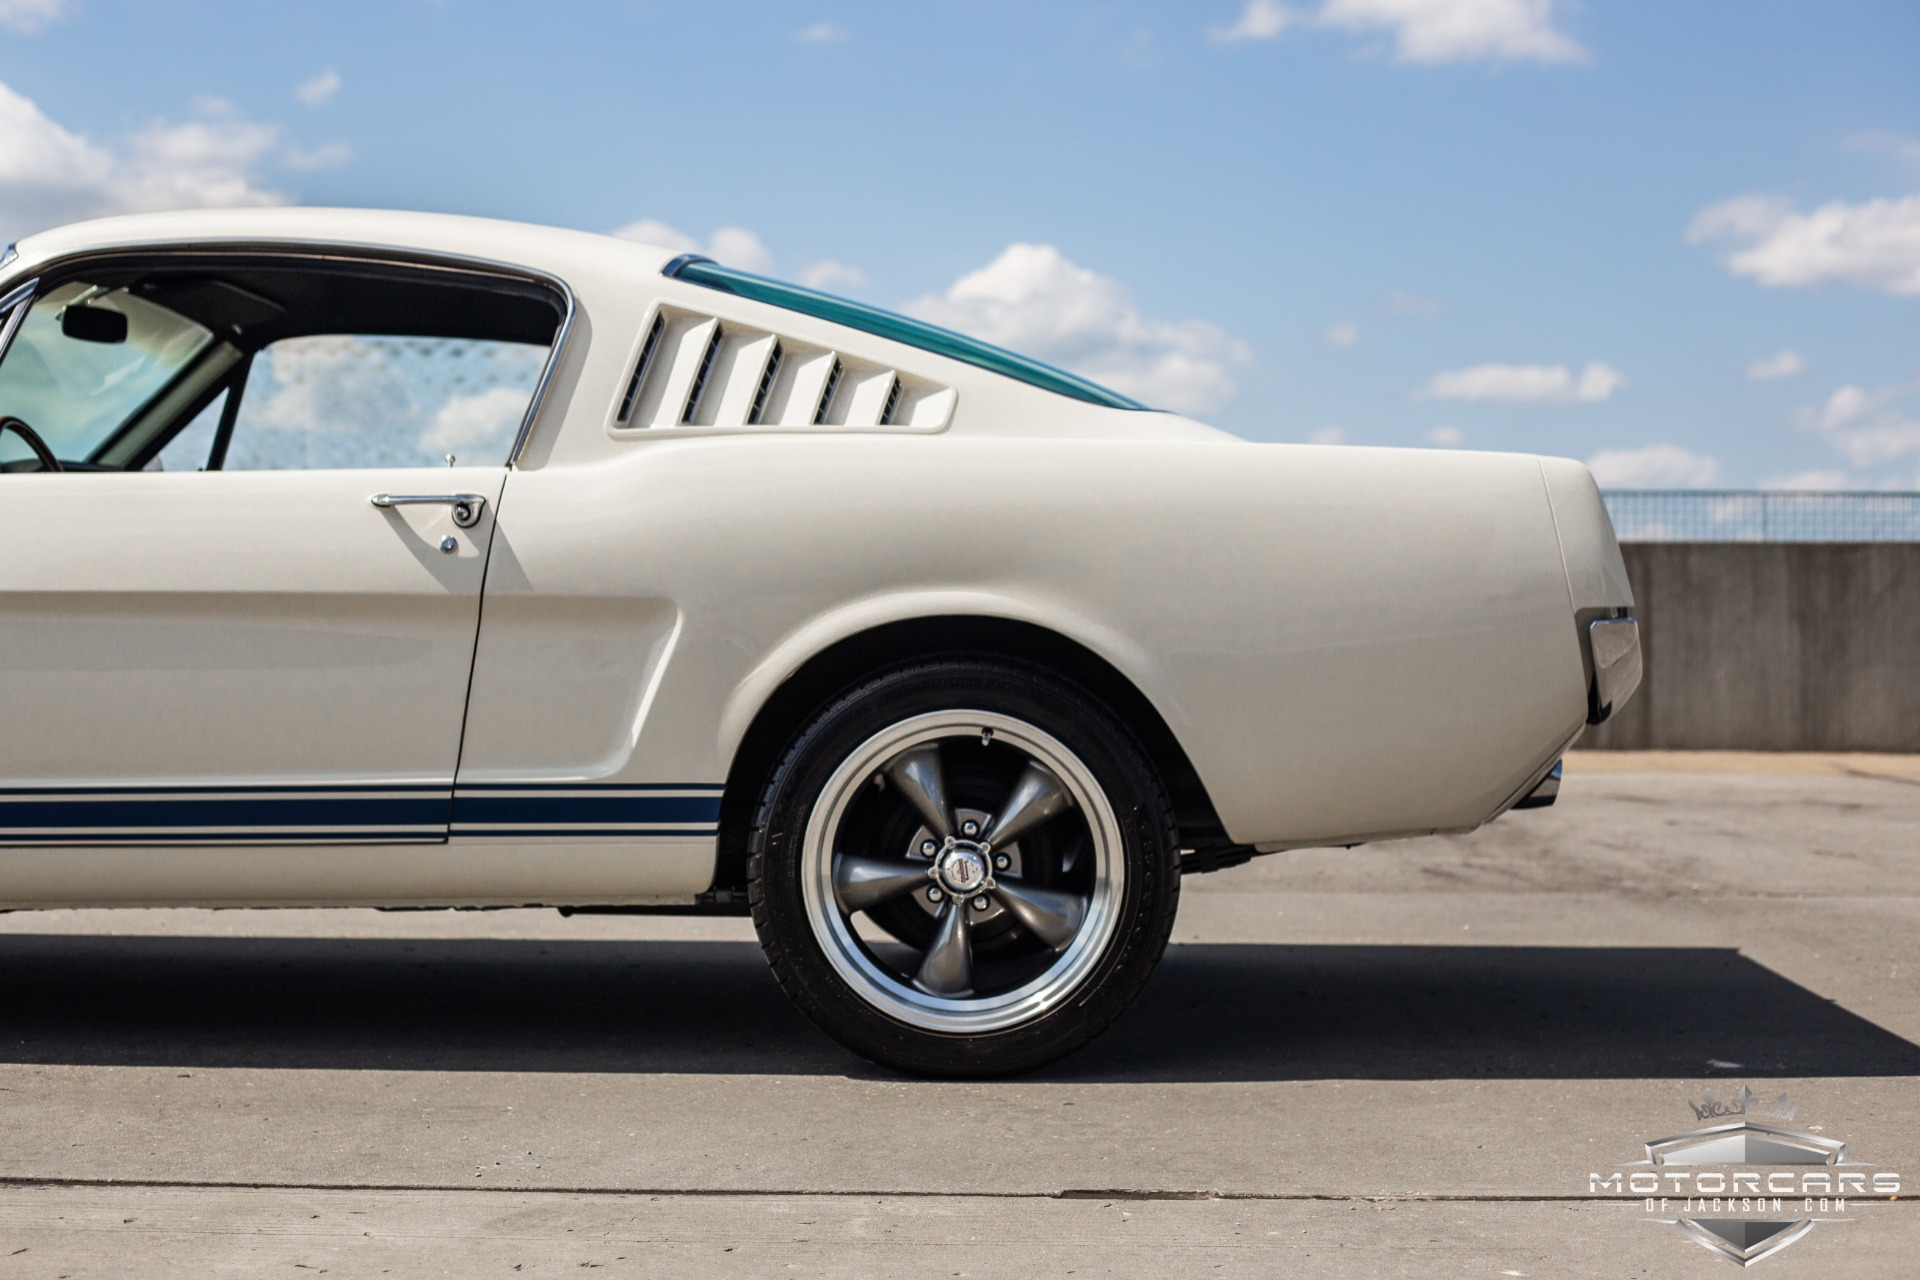 Used-1965-Ford-Mustang-Fastback-2+2-for-sale-Jackson-MS